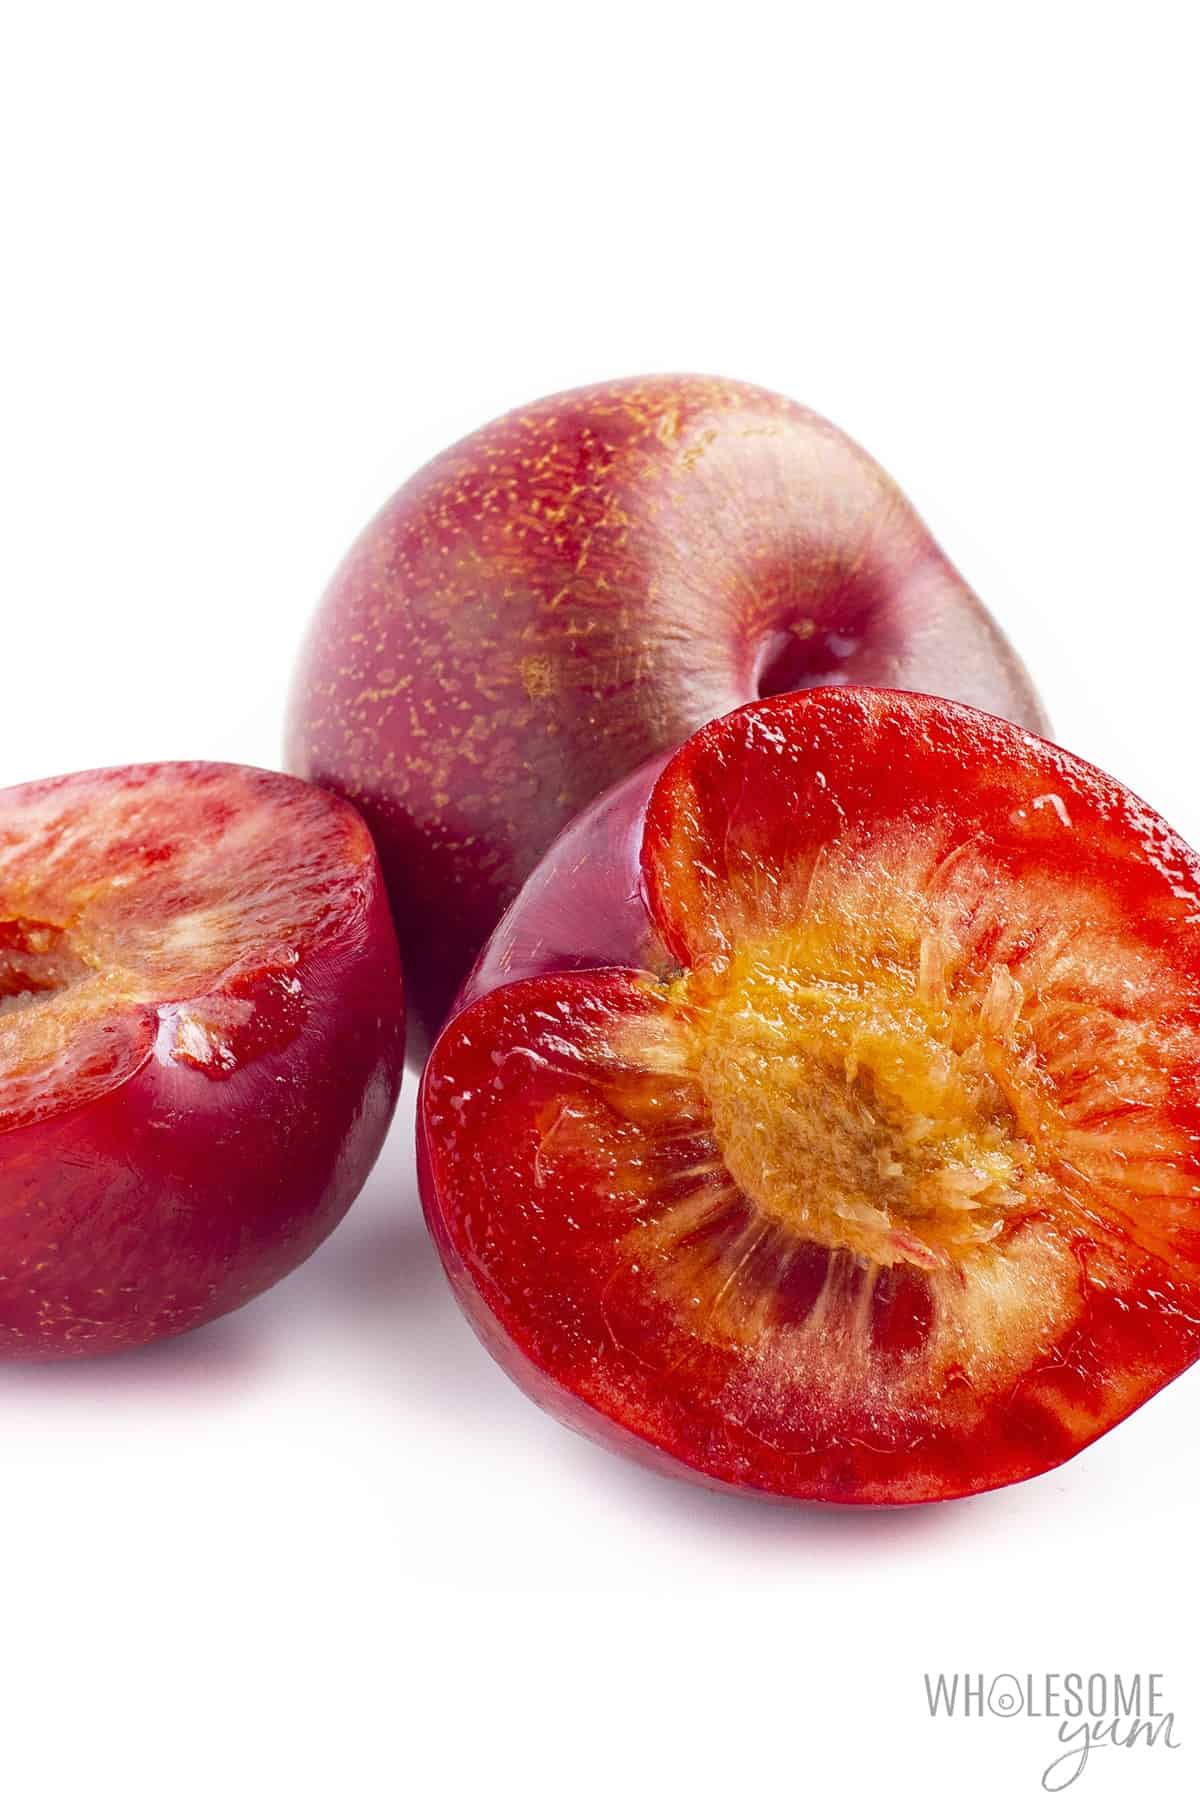 Are plums keto? These fresh plums might be keto friendly on occasion.